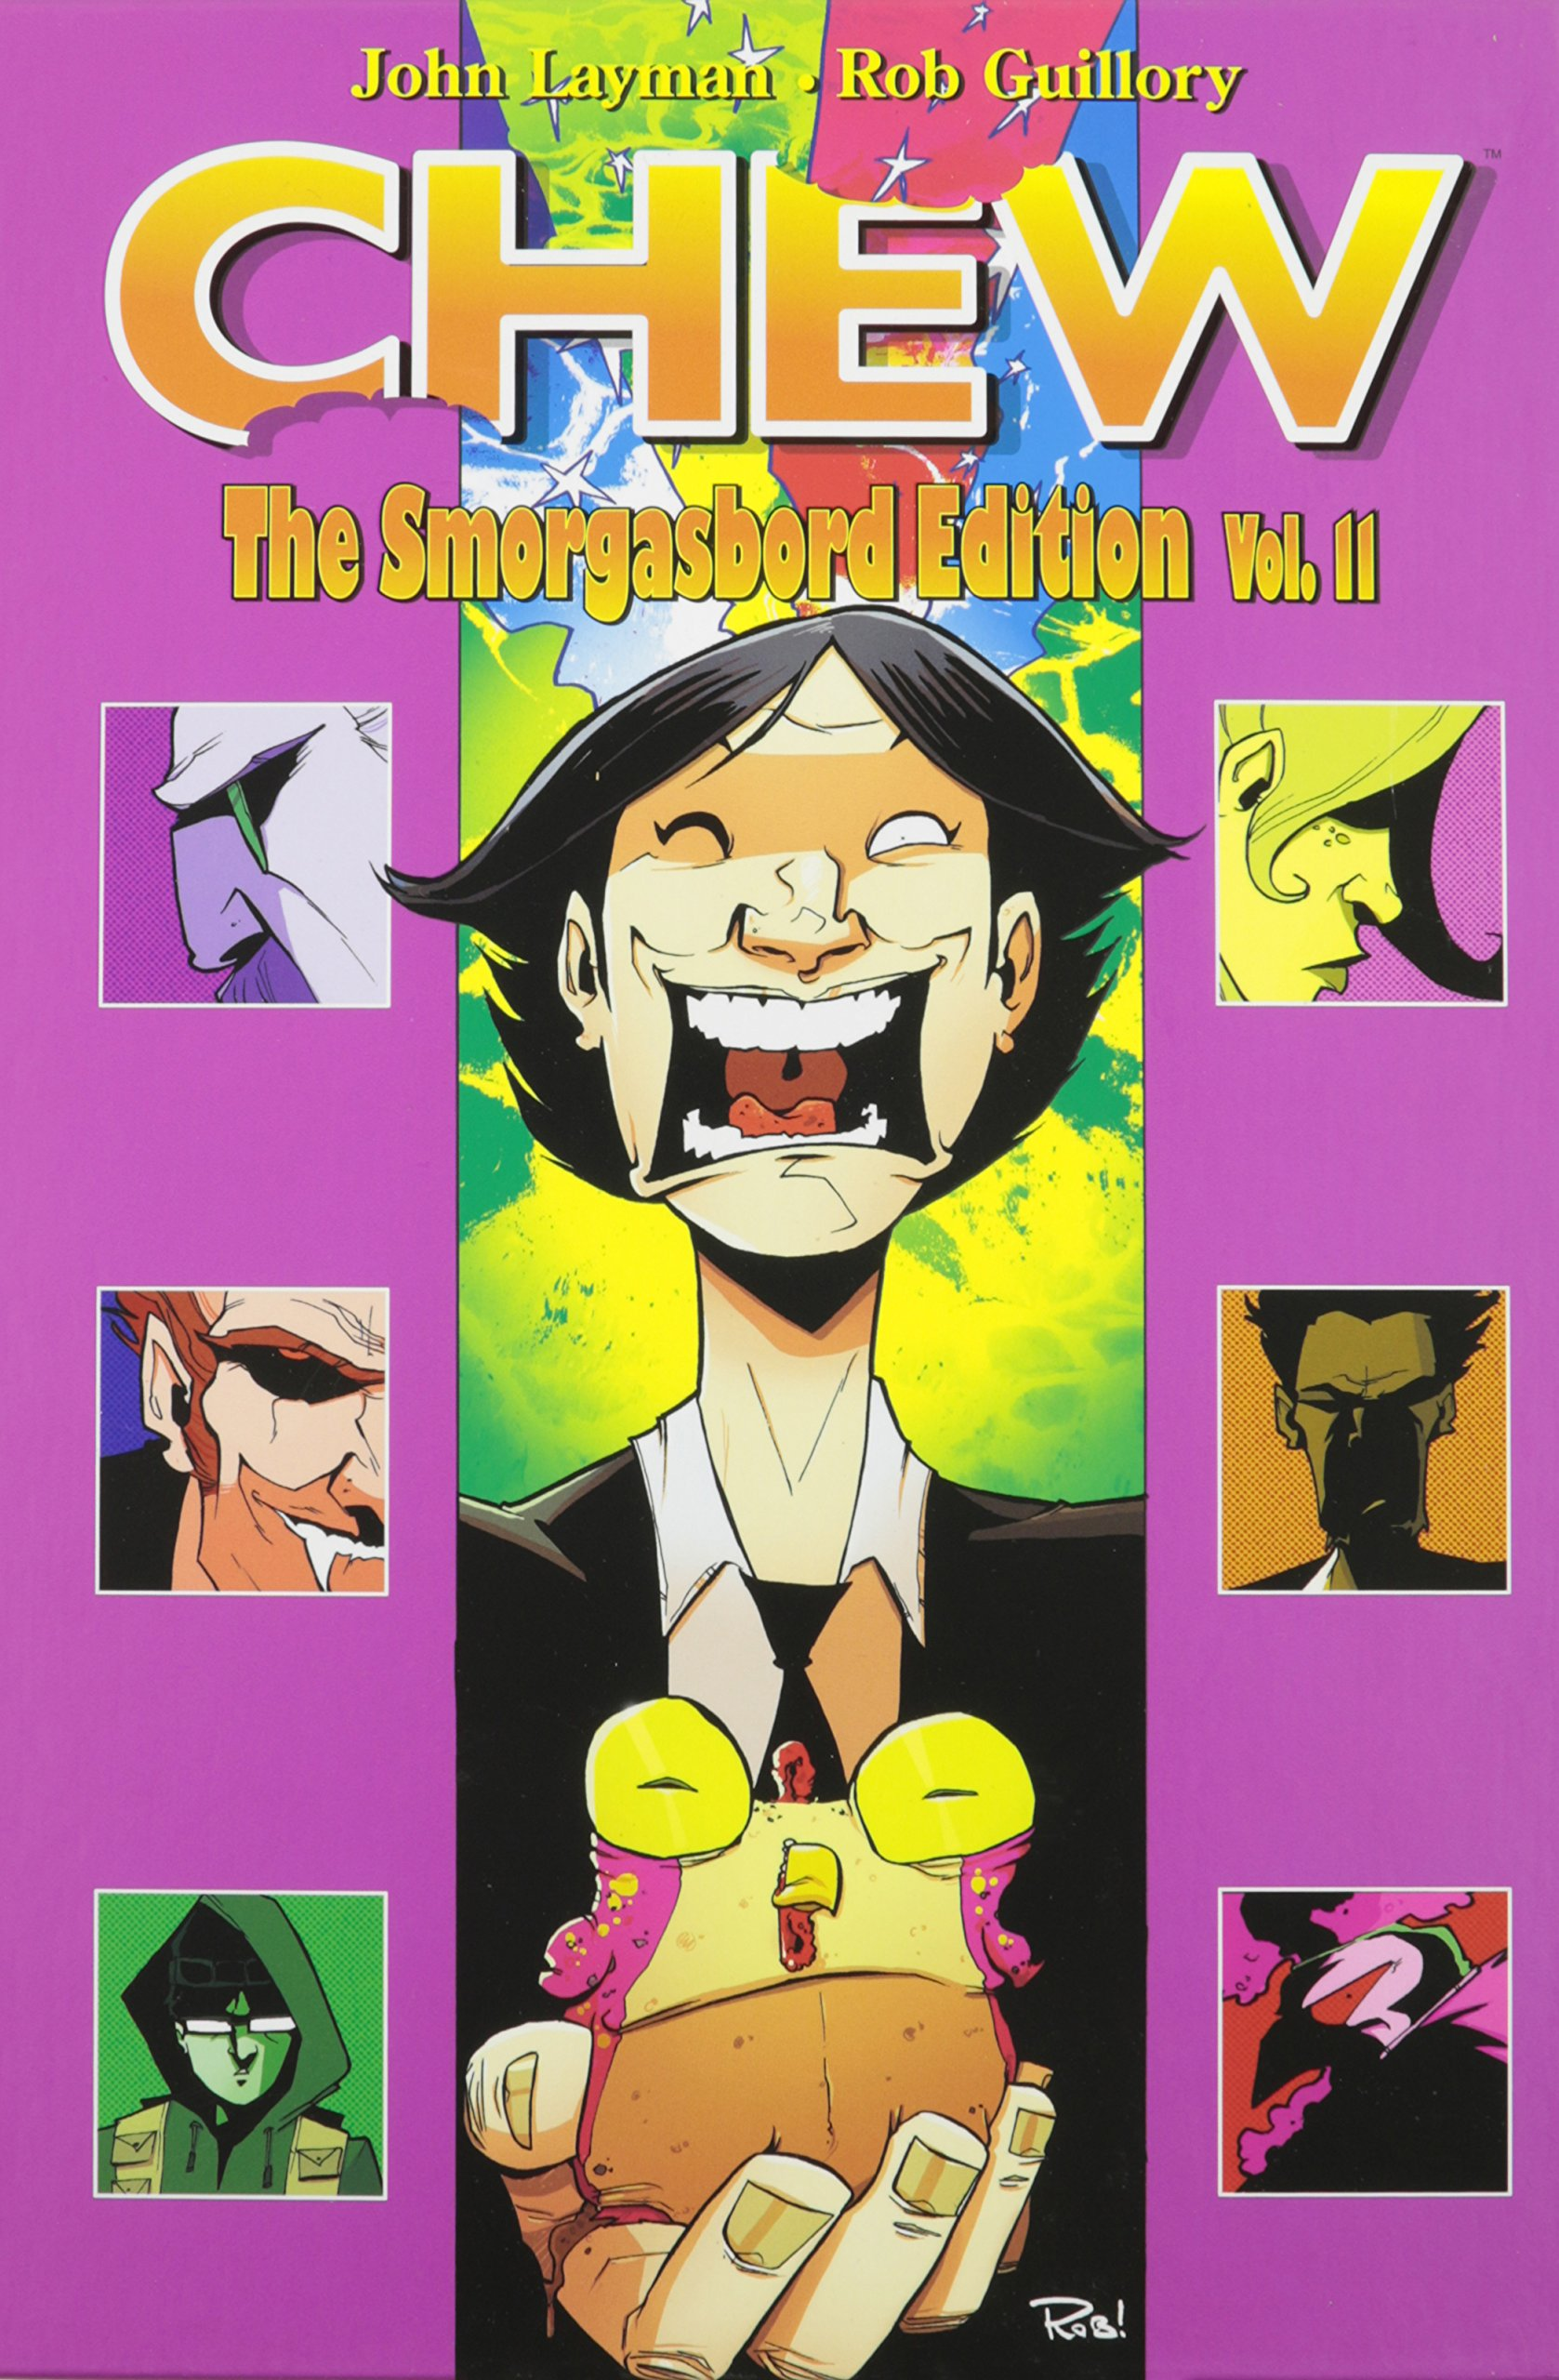 Download Chew Smorgasbord Edition Volume 2 Signed & Numbered Edition pdf